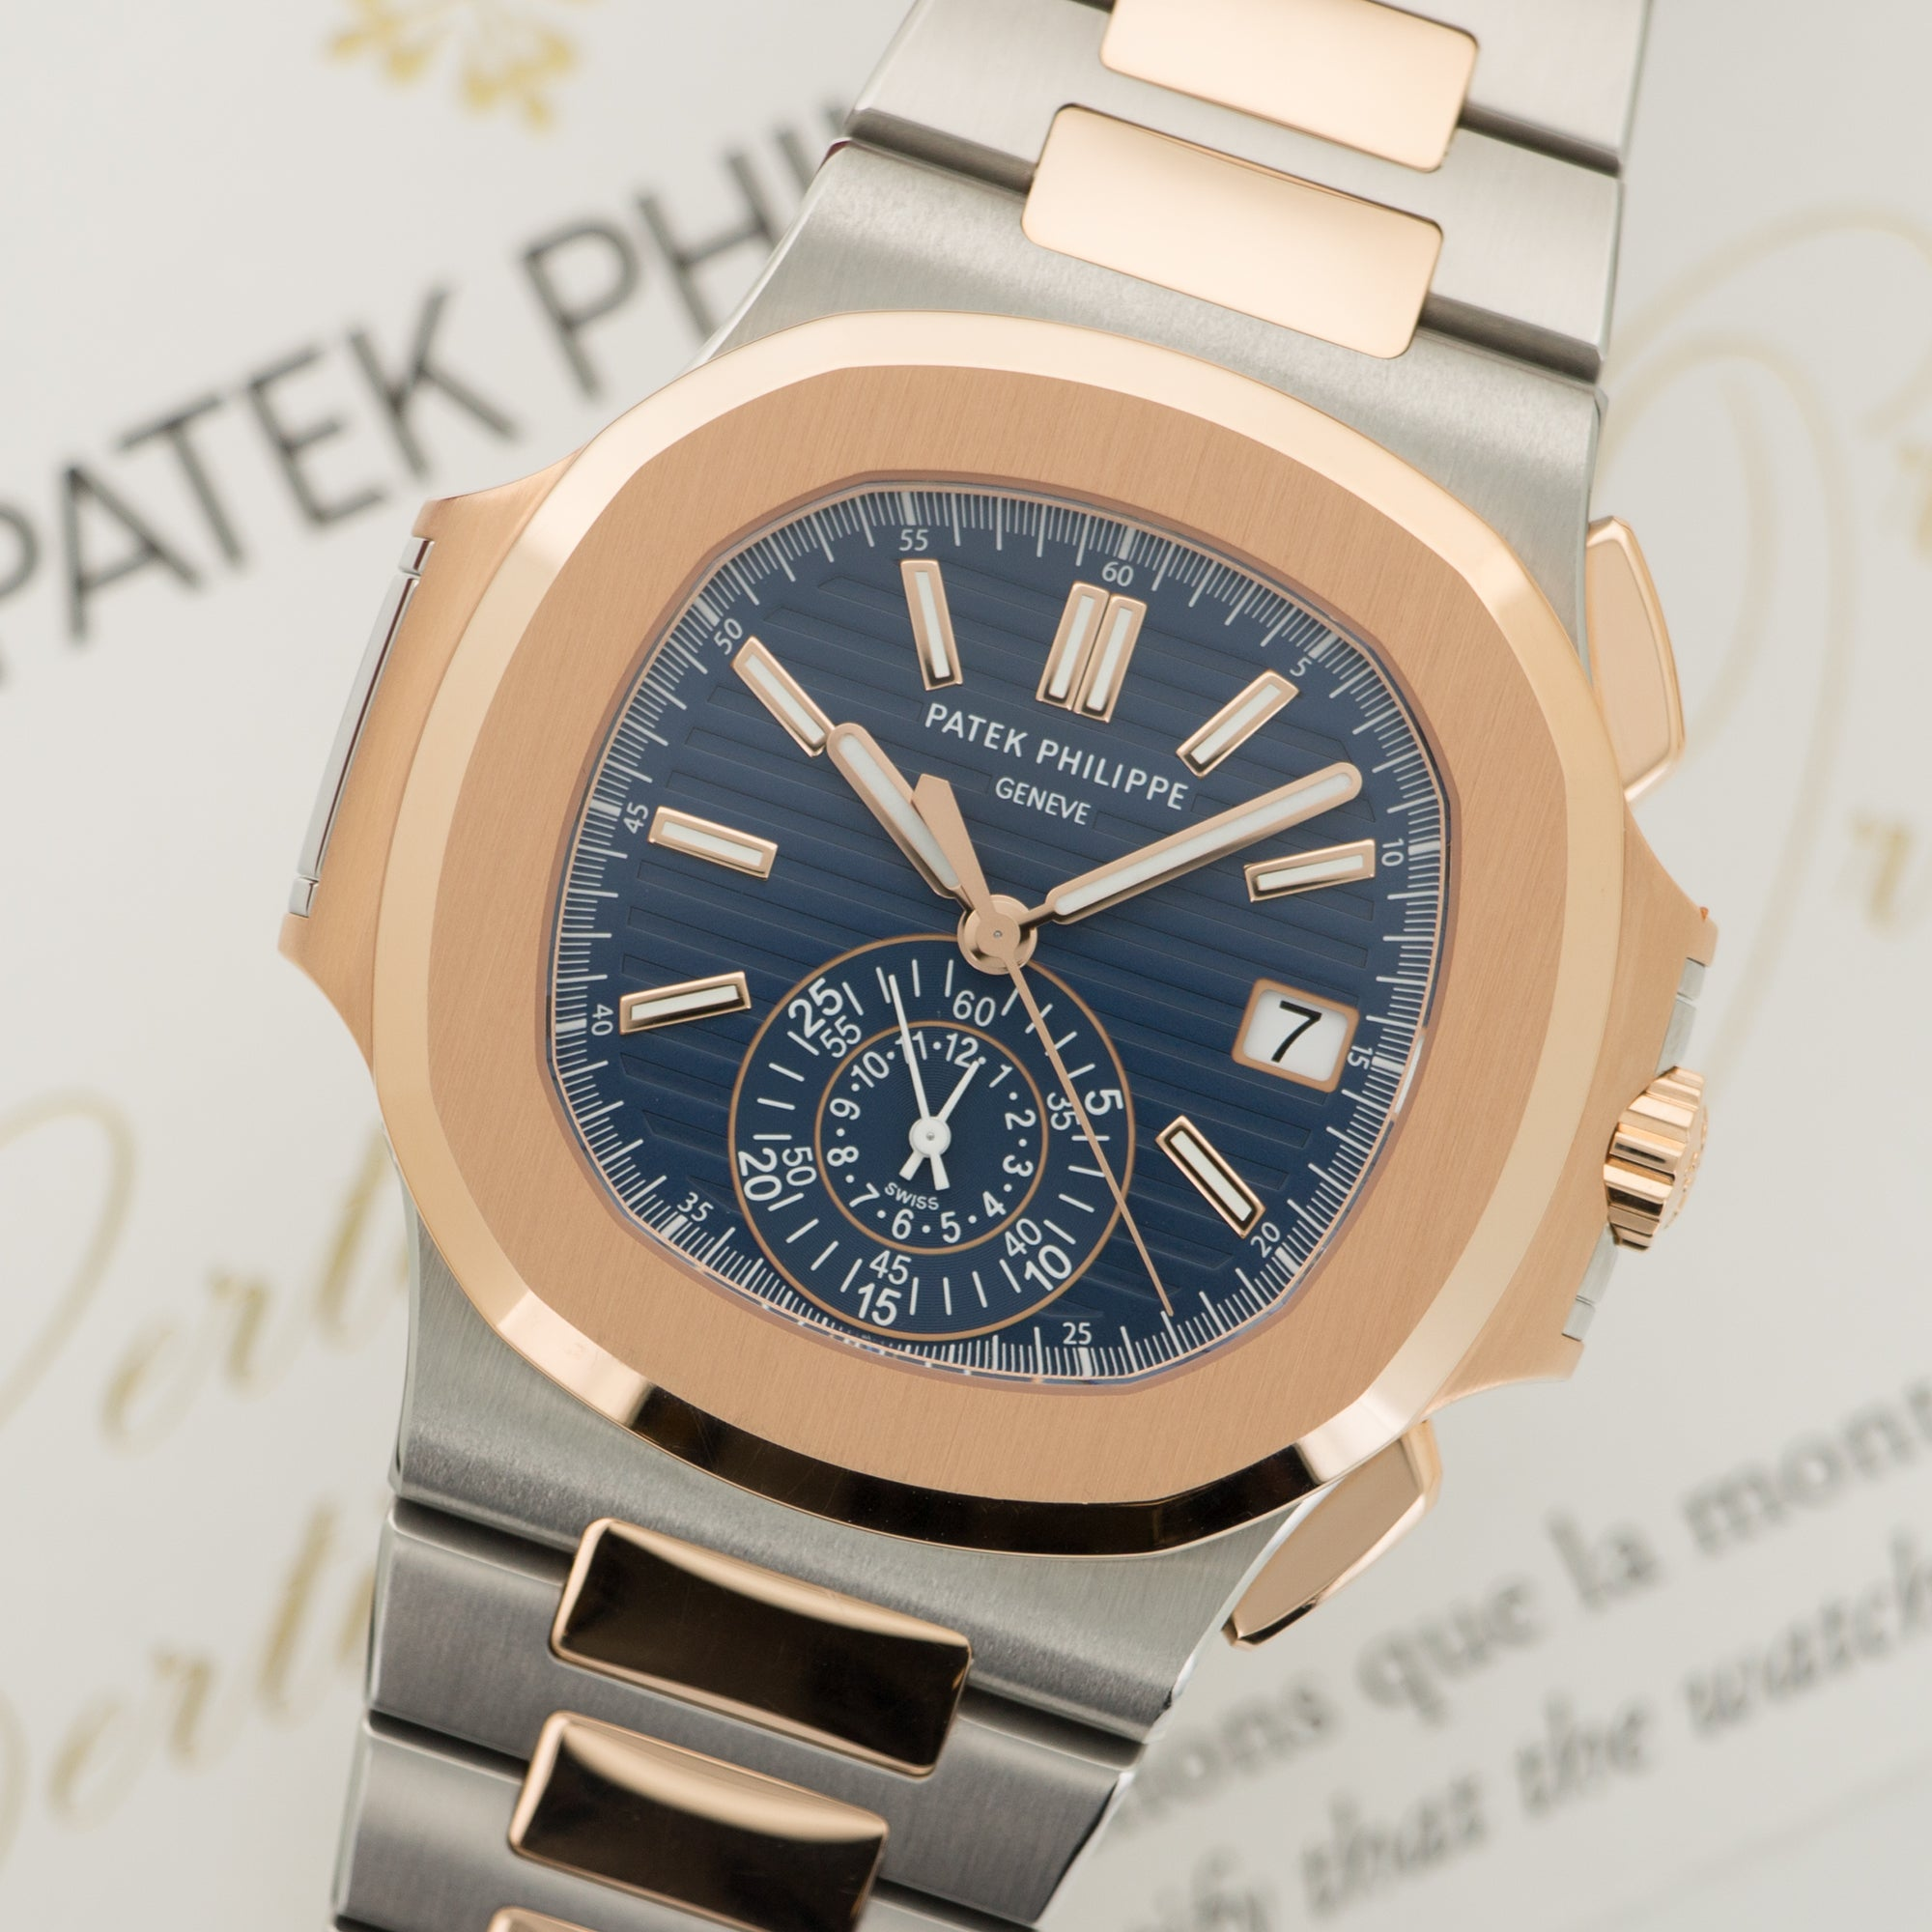 Patek Philippe Nautilus Chronograph 5980/1AR SS/RG  Like New, Worn a Few Times Unisex SS/RG Blue 40mm Automatic 2017 Two-Tone Rose Gold Bracelet Original Box and Certificate